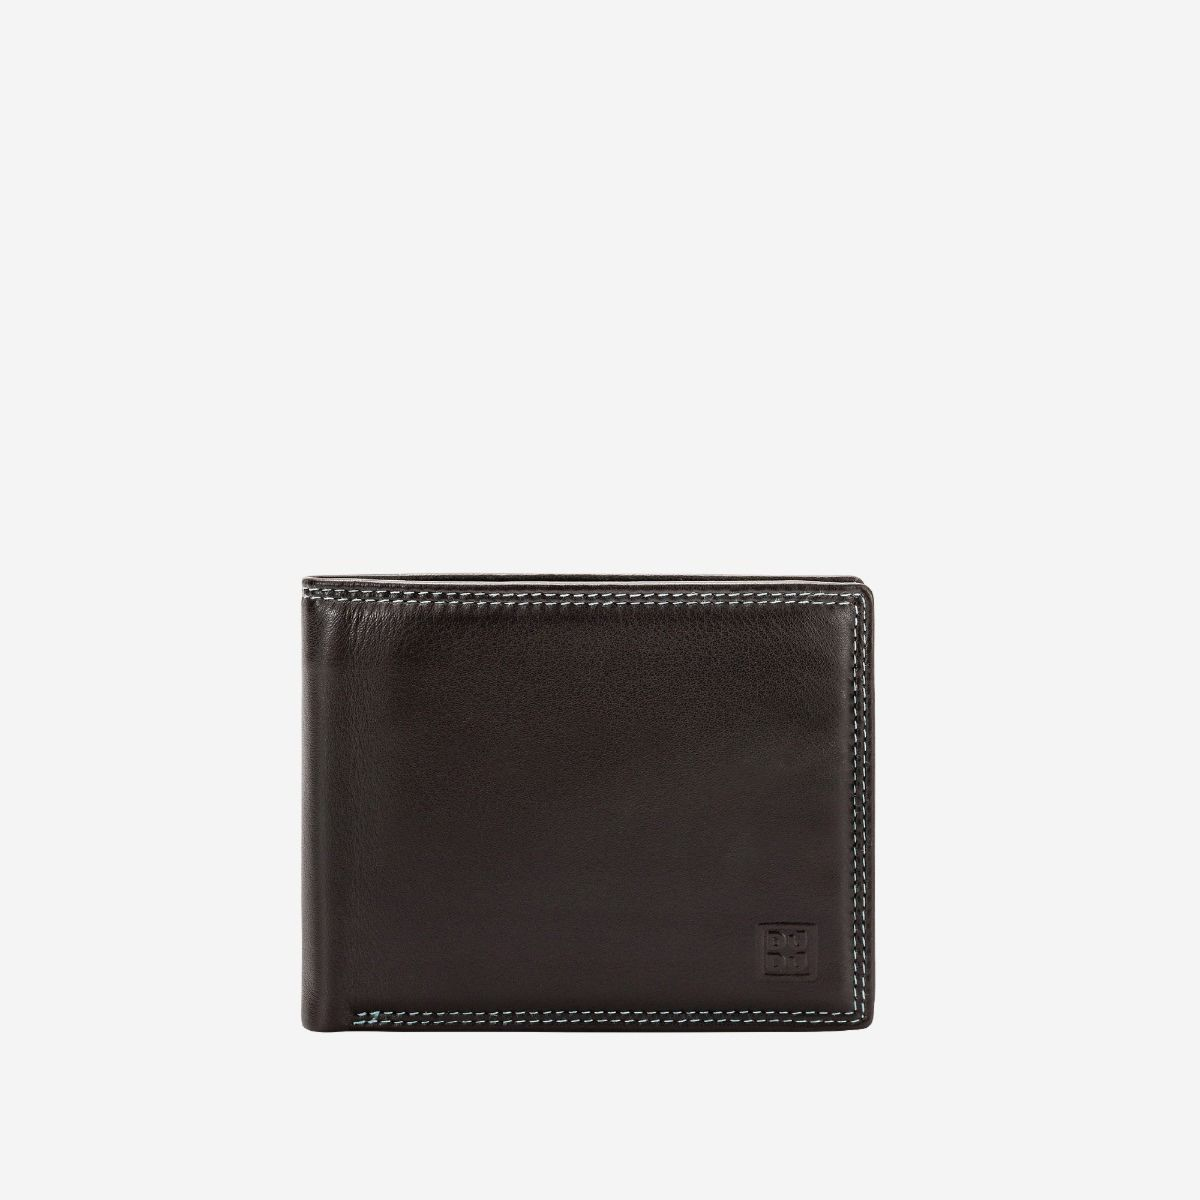 DuDu Slim Leather Multi Color Callet With Coin Purse - Dark Brown